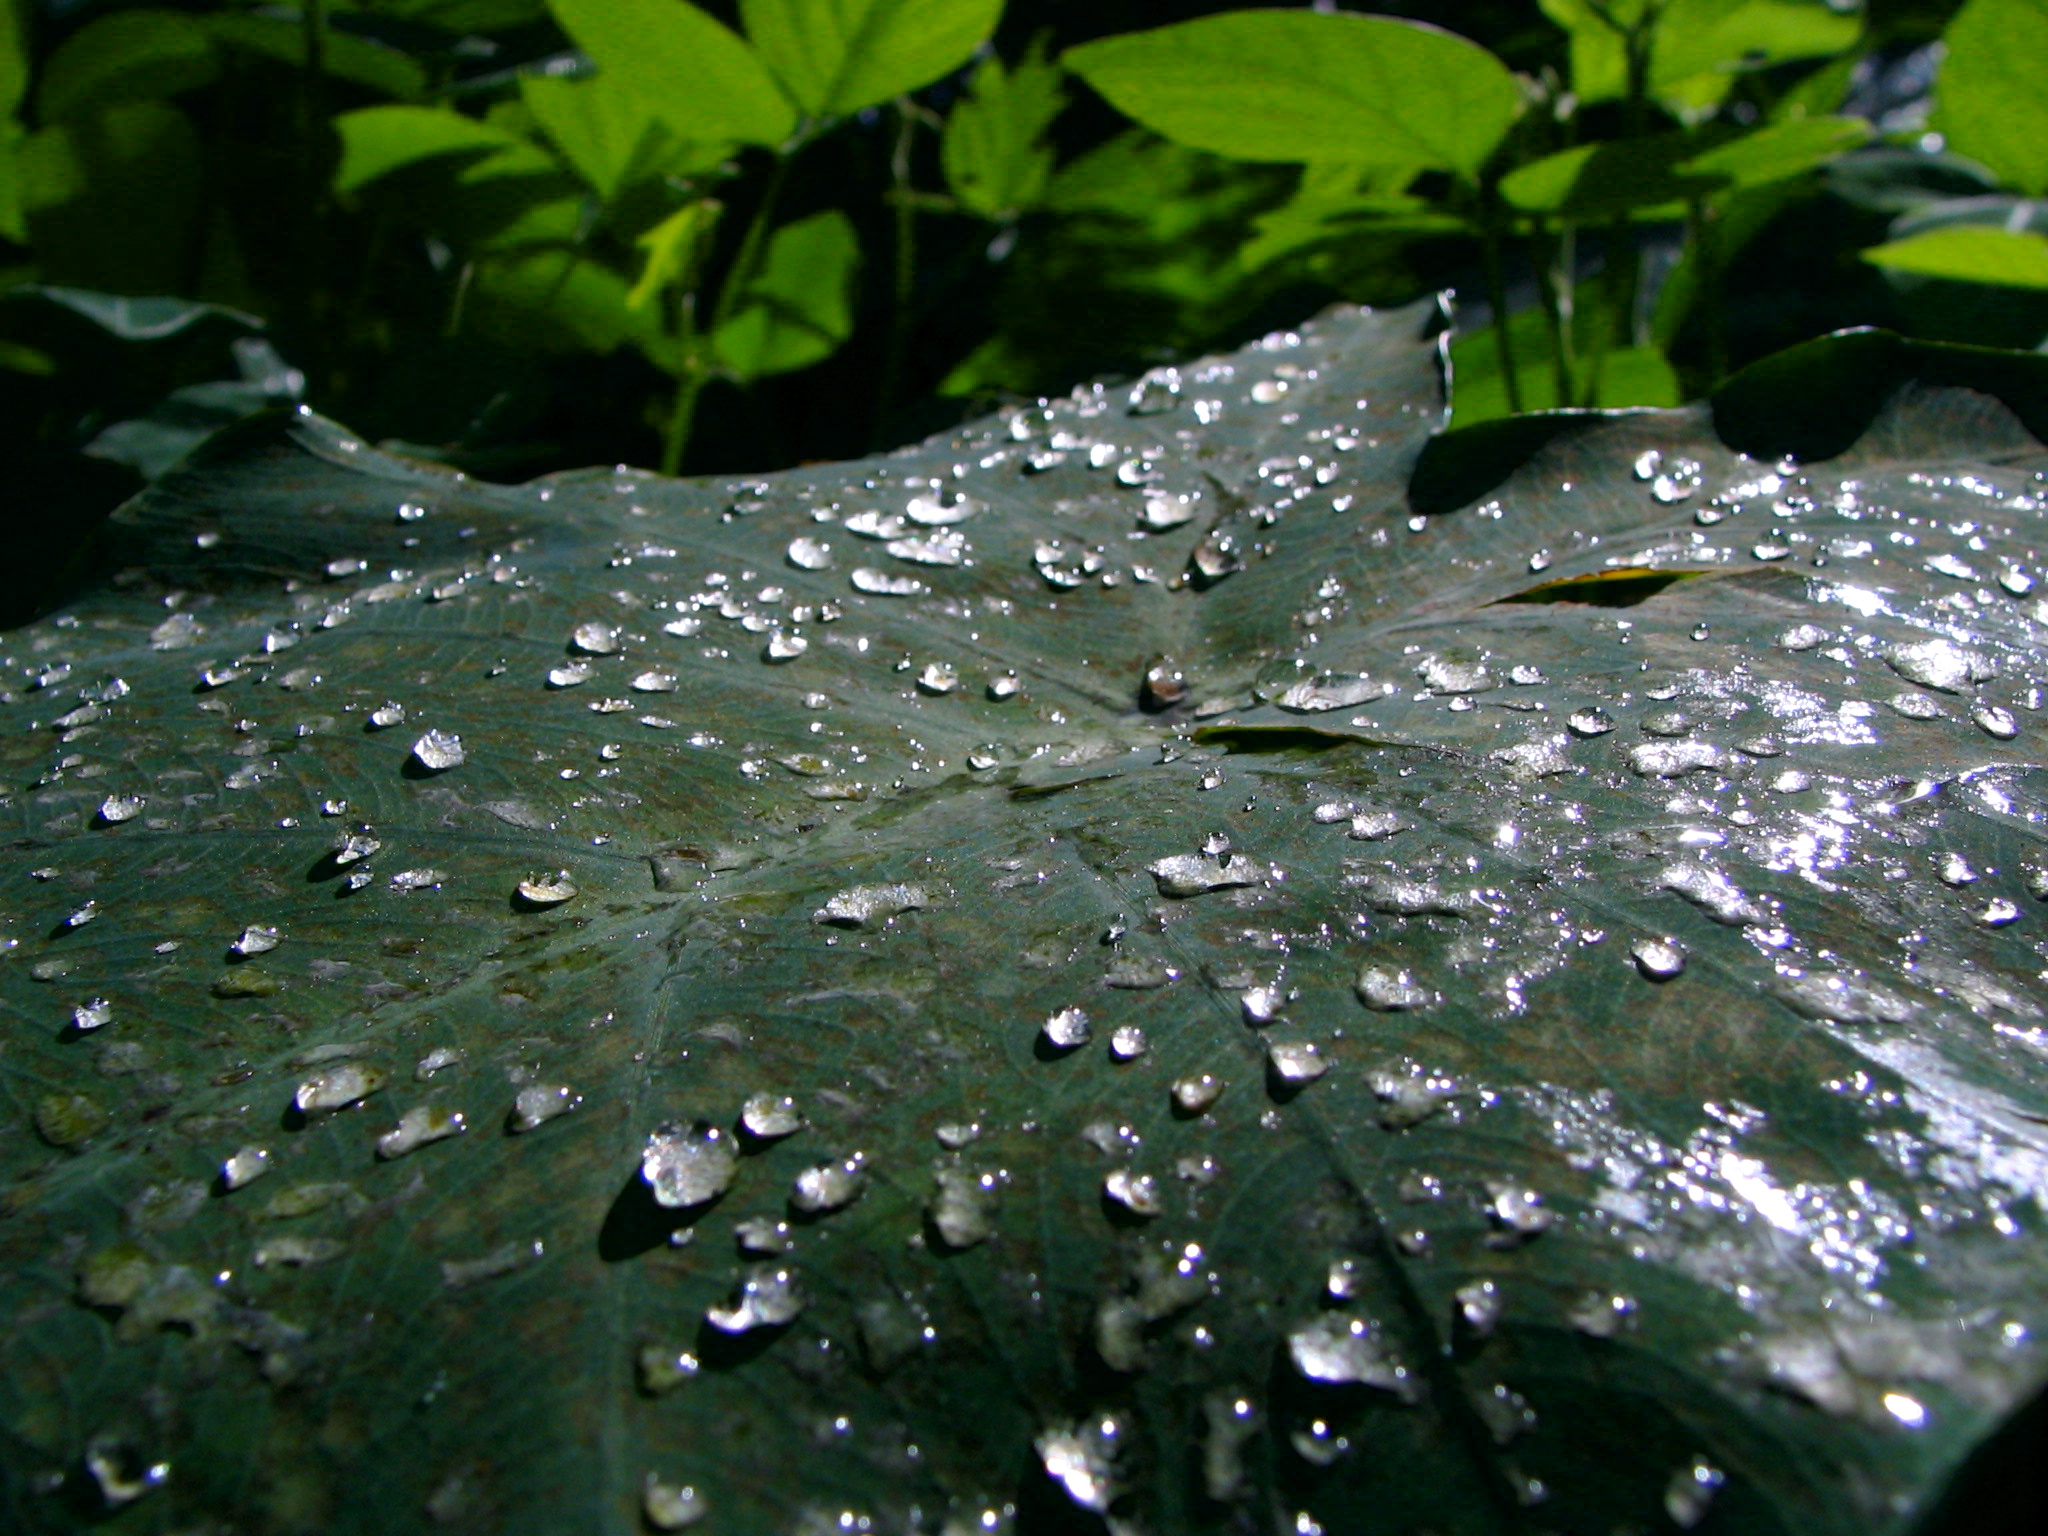 Droplets by siostra-rana